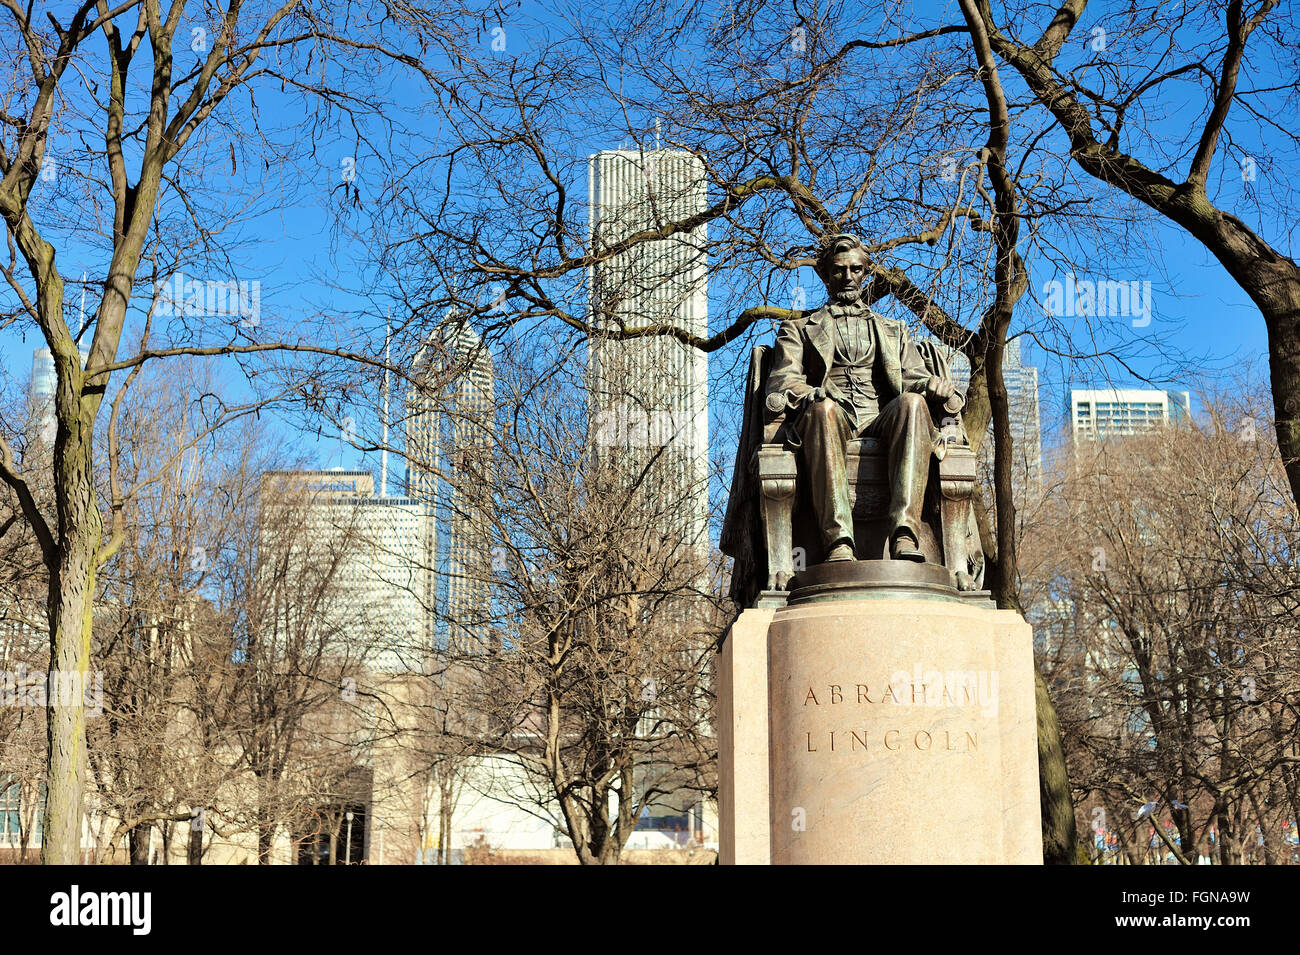 The Head of State bronze stature, also called Seated Lincoln, is located in Chicago's Grant Park. Chicago, Illinois, Stock Photo